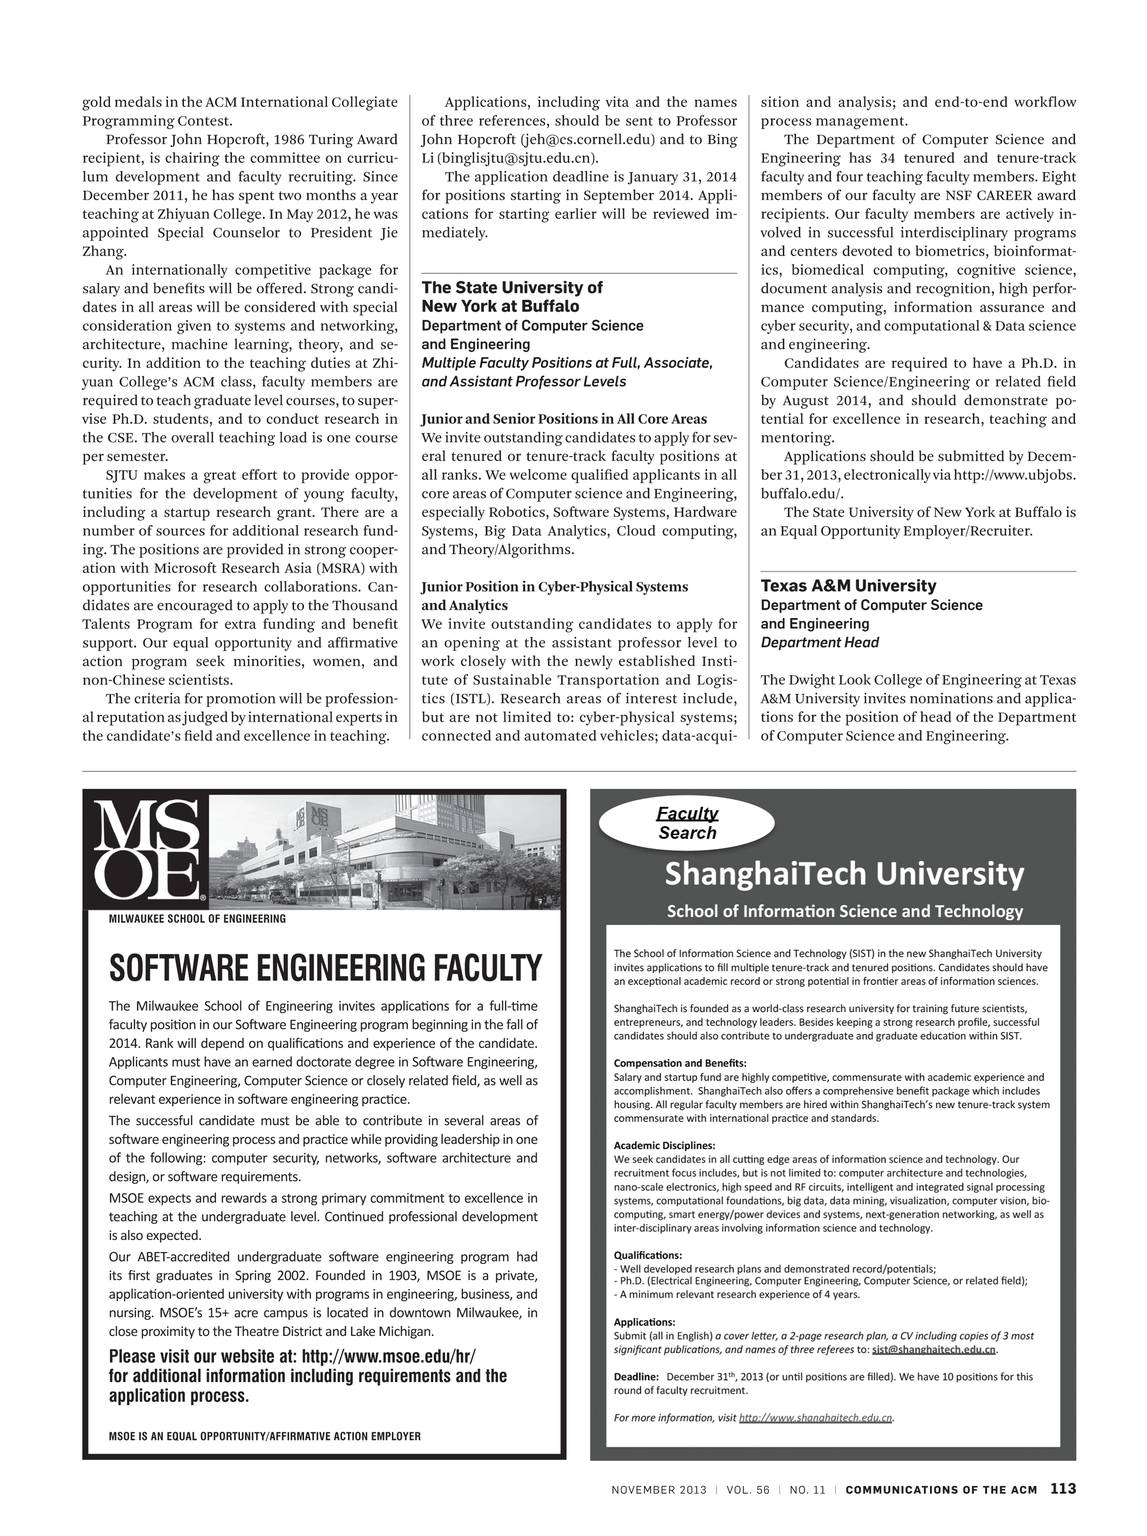 Communications of the ACM - November 2013 - page 113